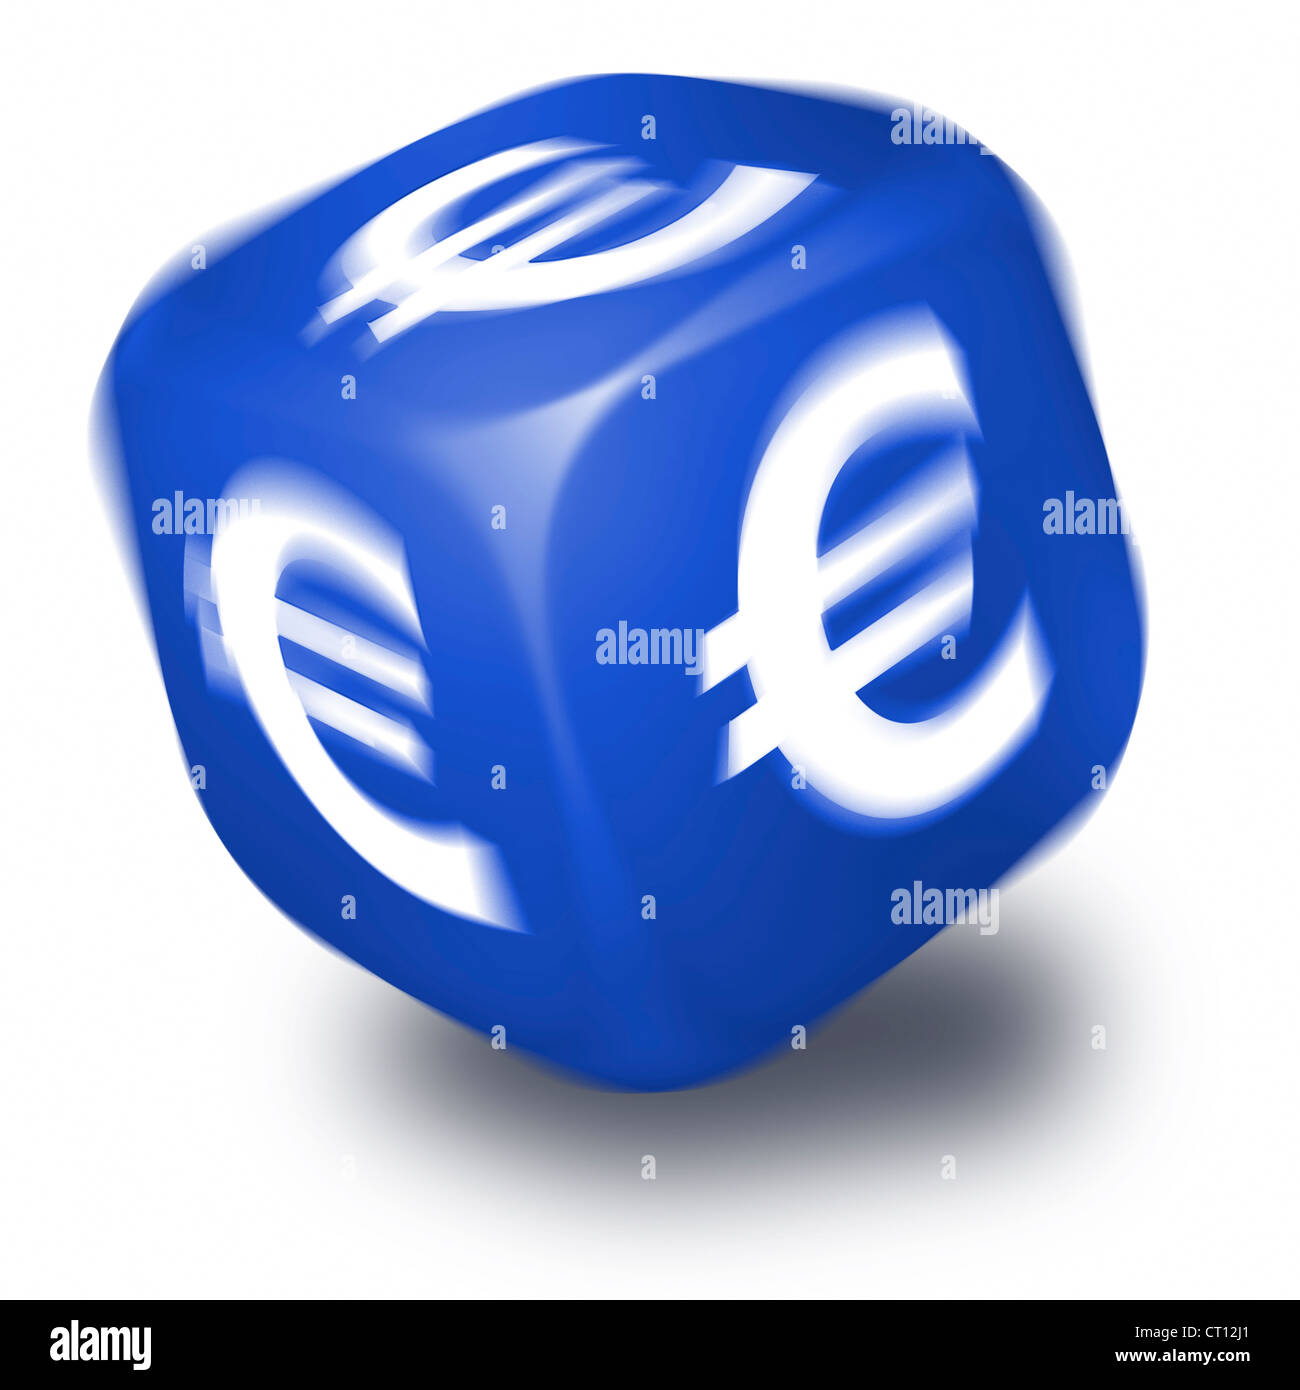 Spinning Blue Dice With The Euro Symbol Printed On Each Face Stock